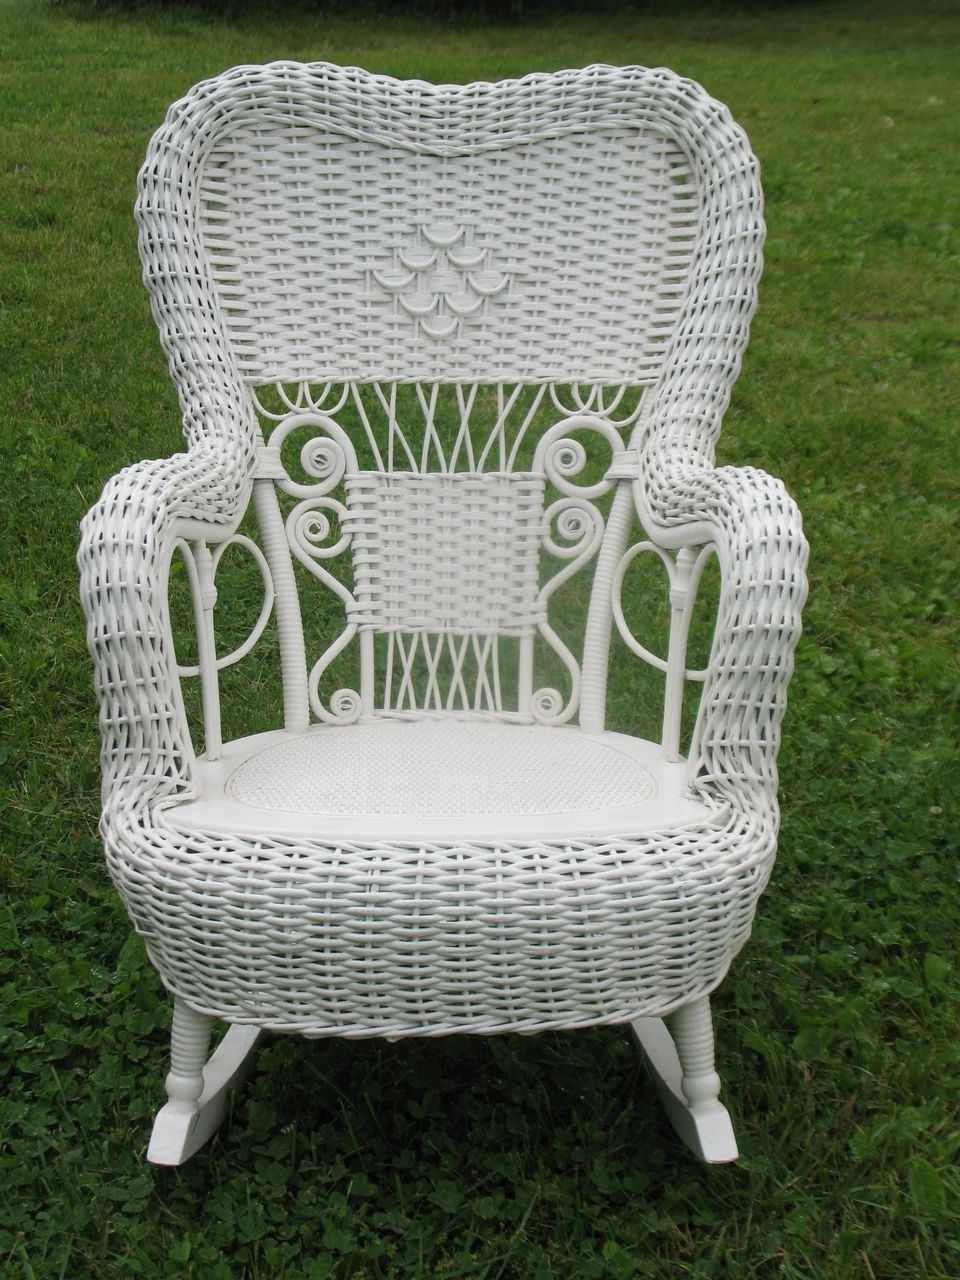 Current Outdoor Vintage Wicker Rocking Chair With Green Color Chairs Rocker With Vintage Wicker Rocking Chairs (View 5 of 15)